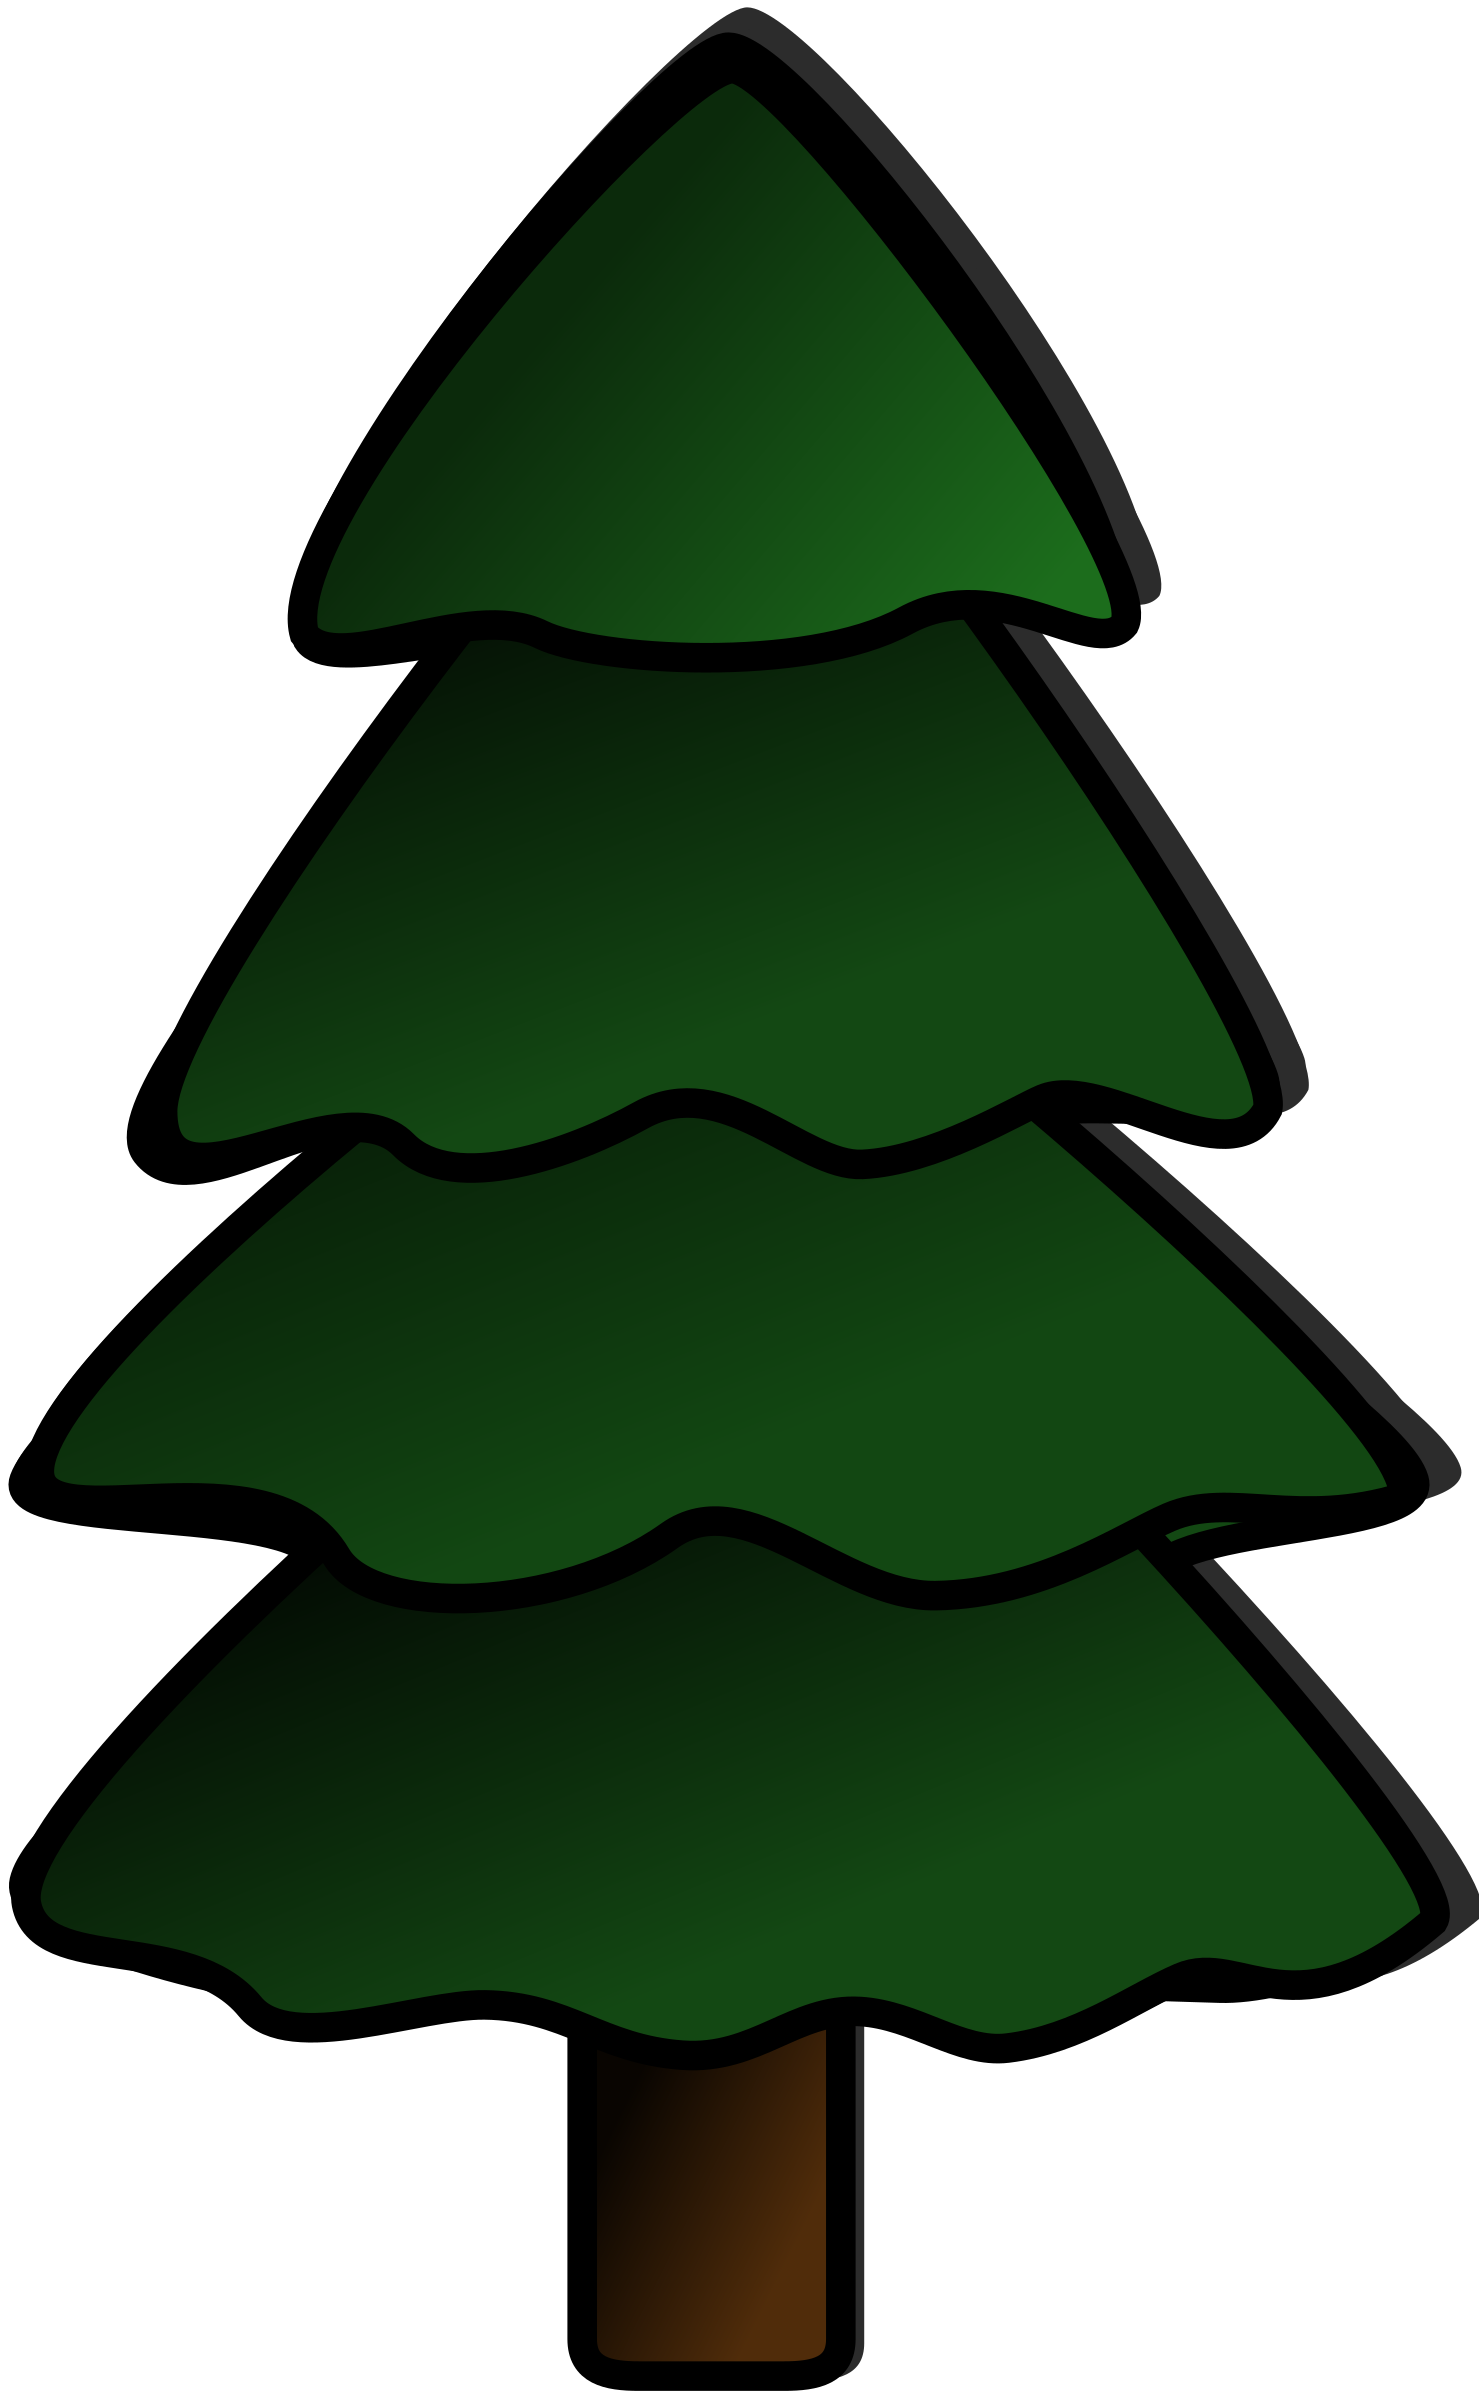 By harmonic an undecorated. 2 clipart pine tree